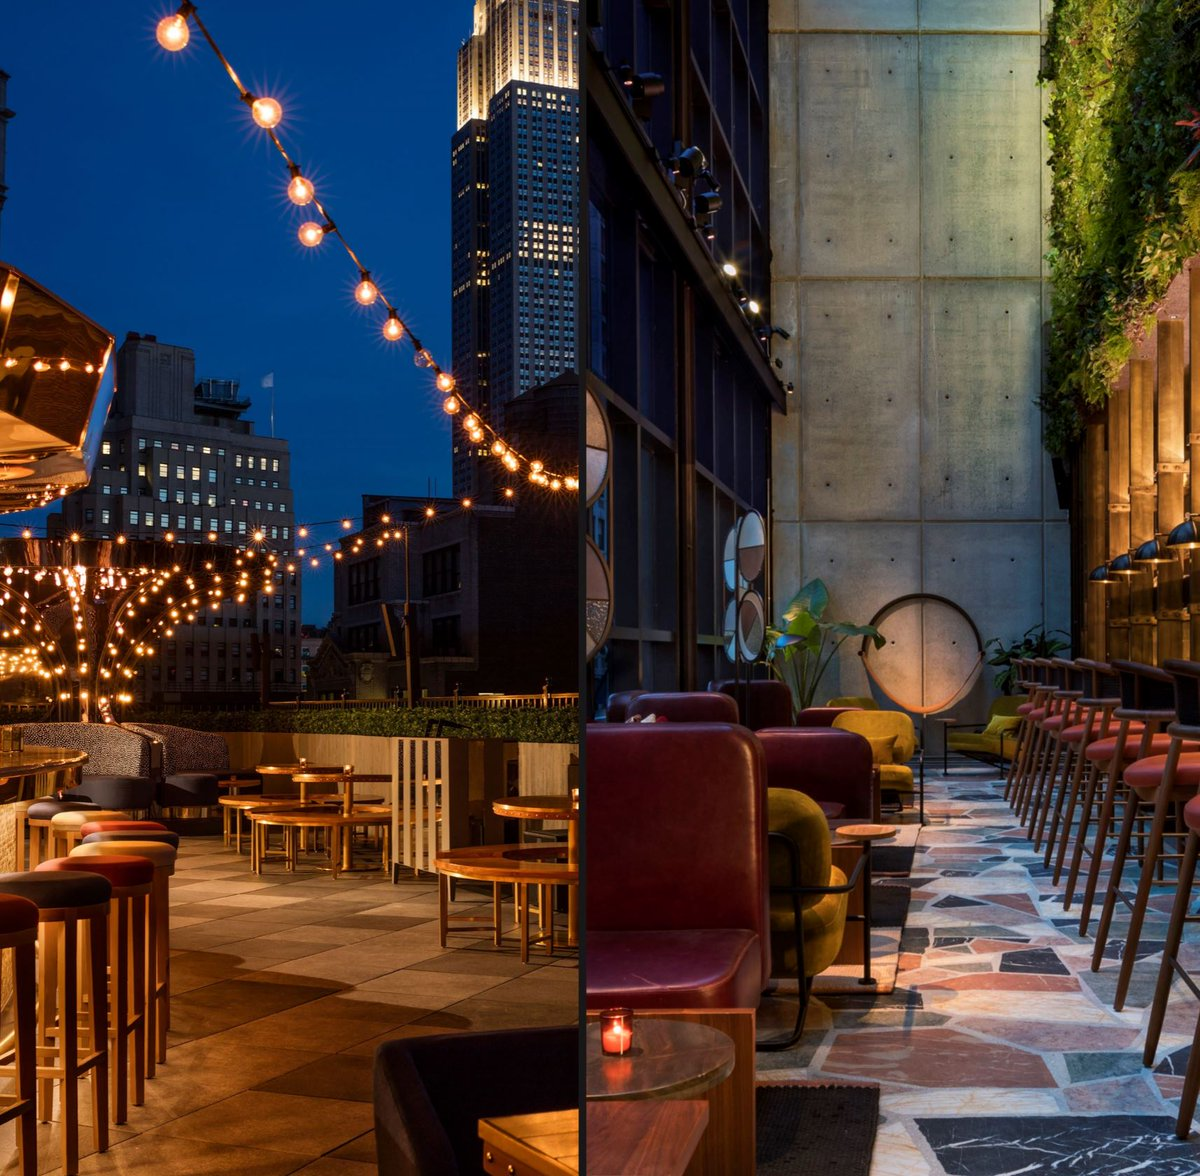 It's Friday night!! Check out the The Magic Hour Rooftop or the Conservatory at @MoxyHotels in #NY read our Fall issue for some cool drinks stories!  #nynightlife #drinks #hotwinternights #NYmovesmagazine #NewYork #nightout #date #nylifestyle #lifestyle #chelsea #timessquare